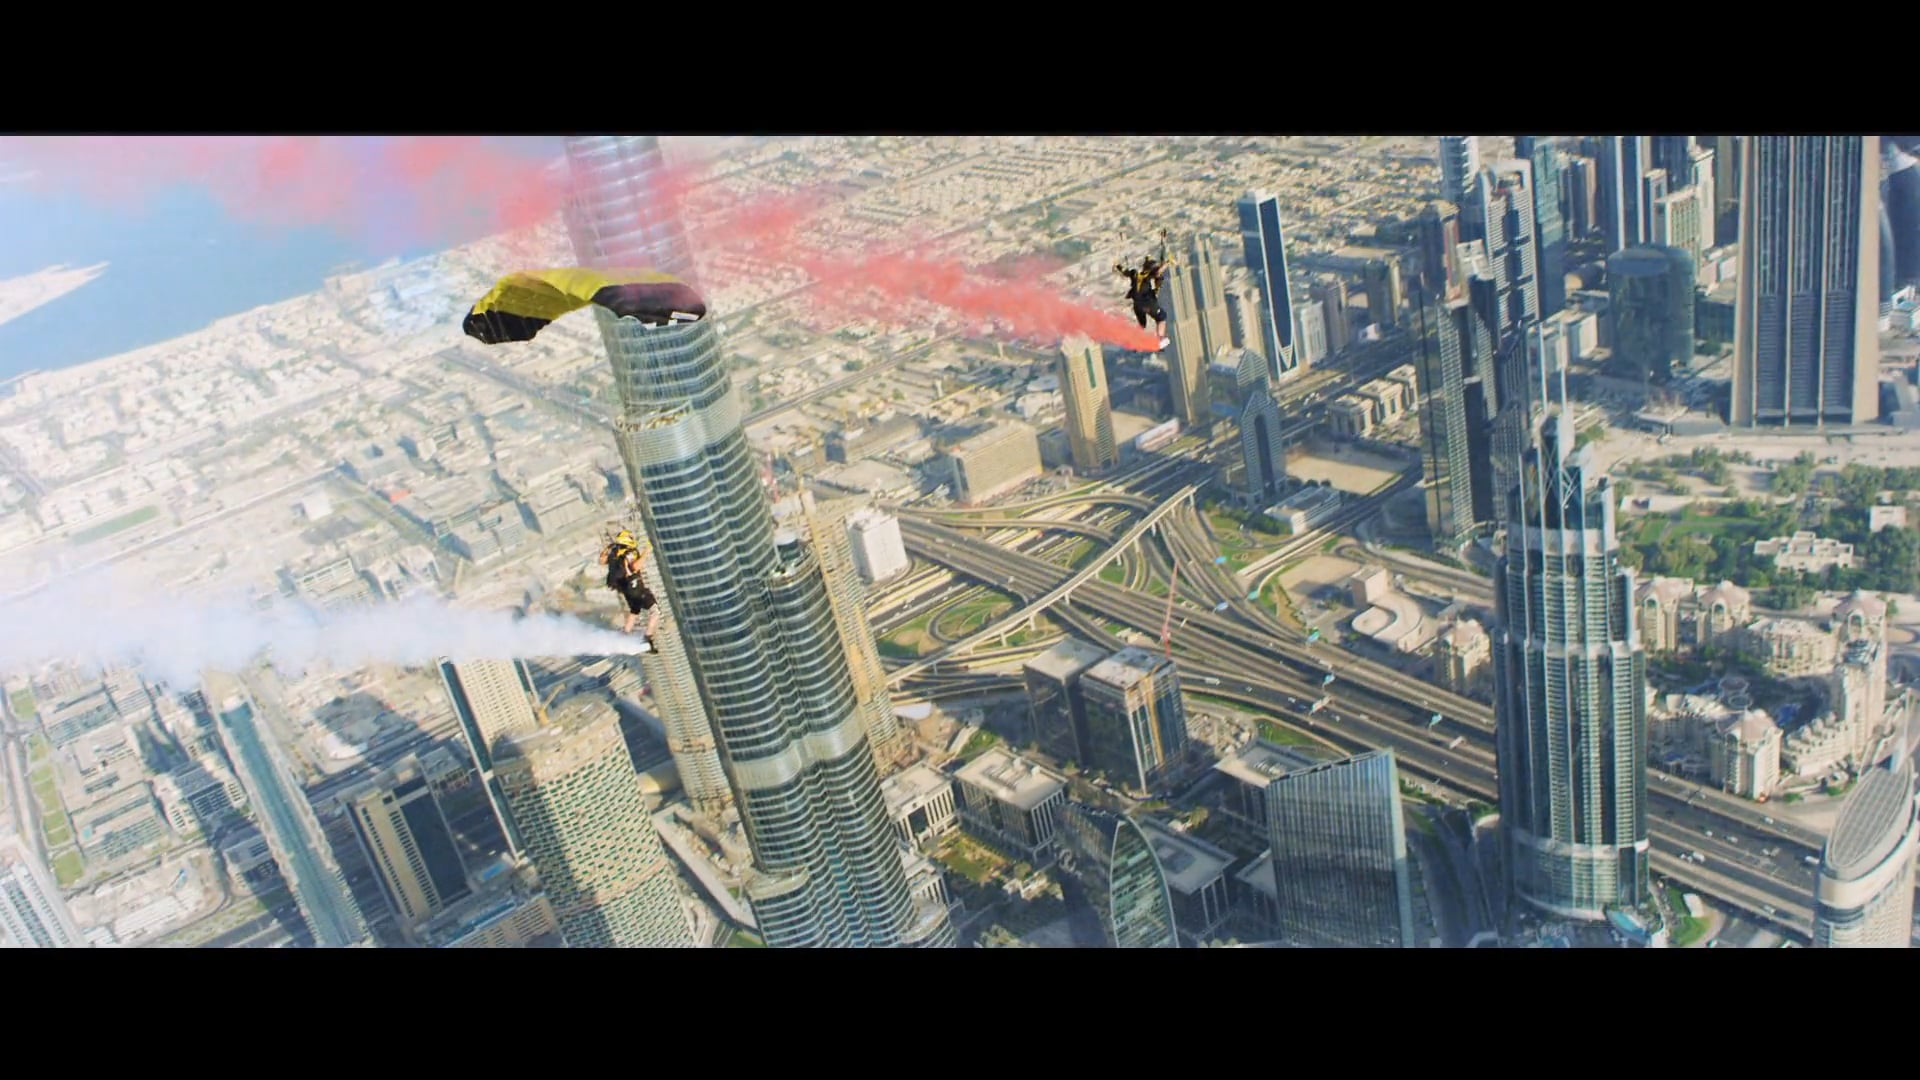 (Singapore Aerial Unit) Investment Corporation of Dubai - Corporate Promo Directed by Mark J. Blackman